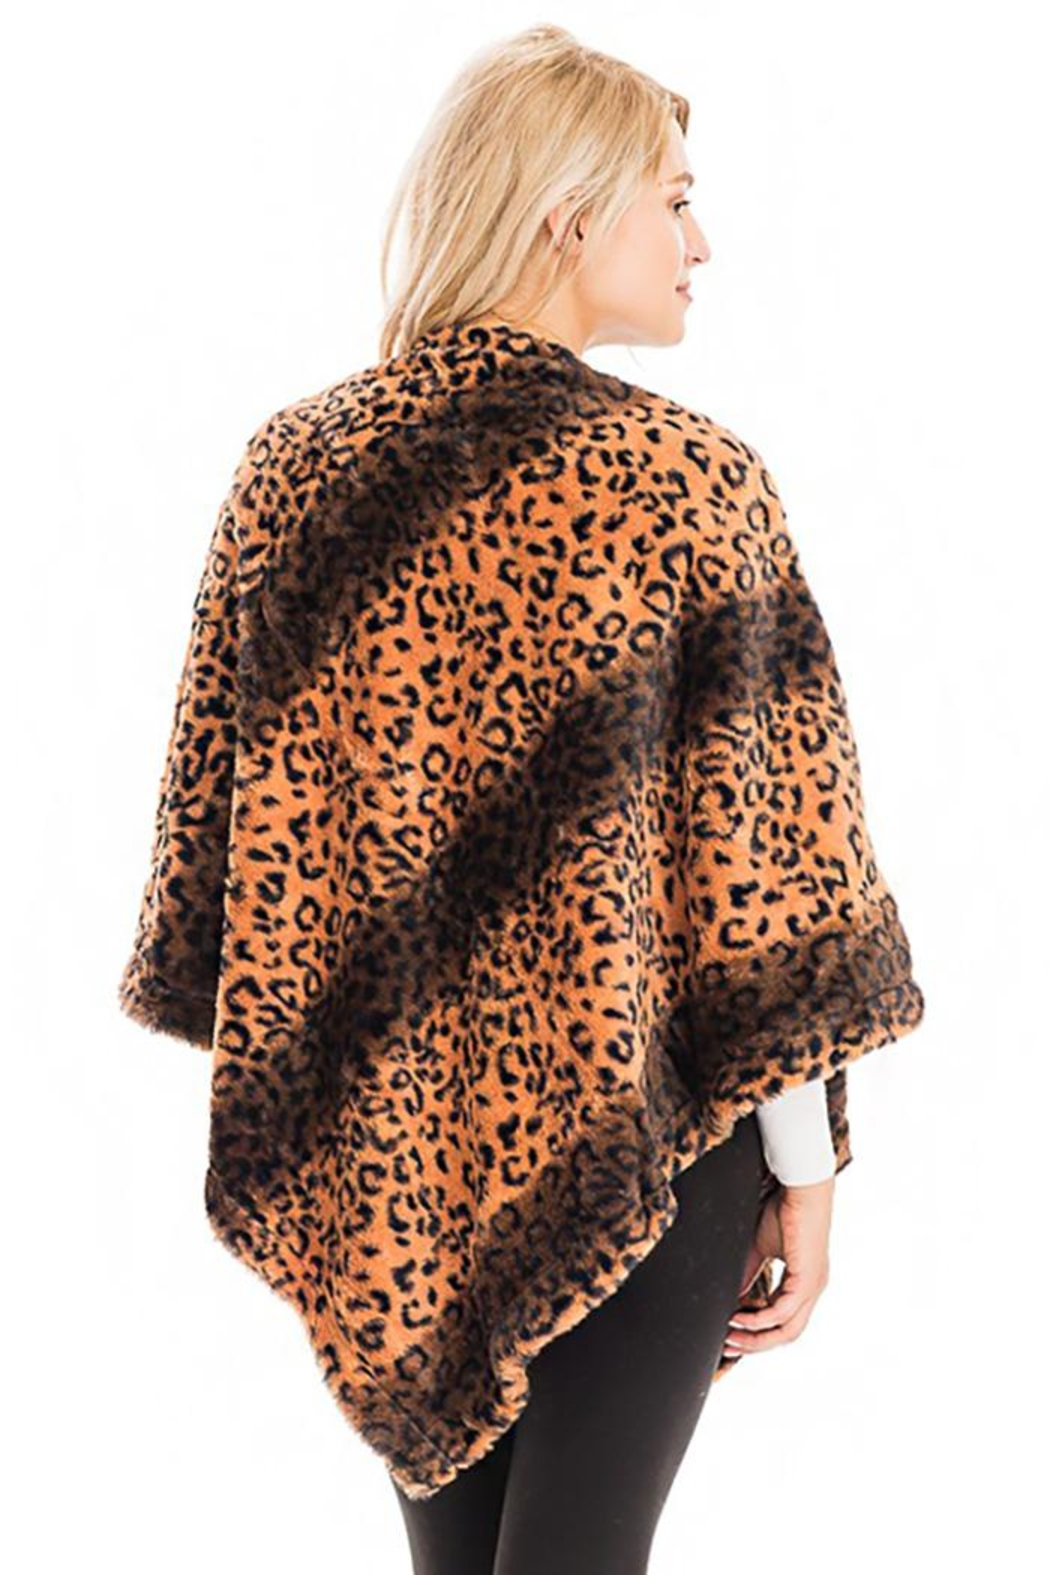 Cap Zone Leopard Patterned And Striped Throw Over Faux Fur Poncho - Side Cropped Image